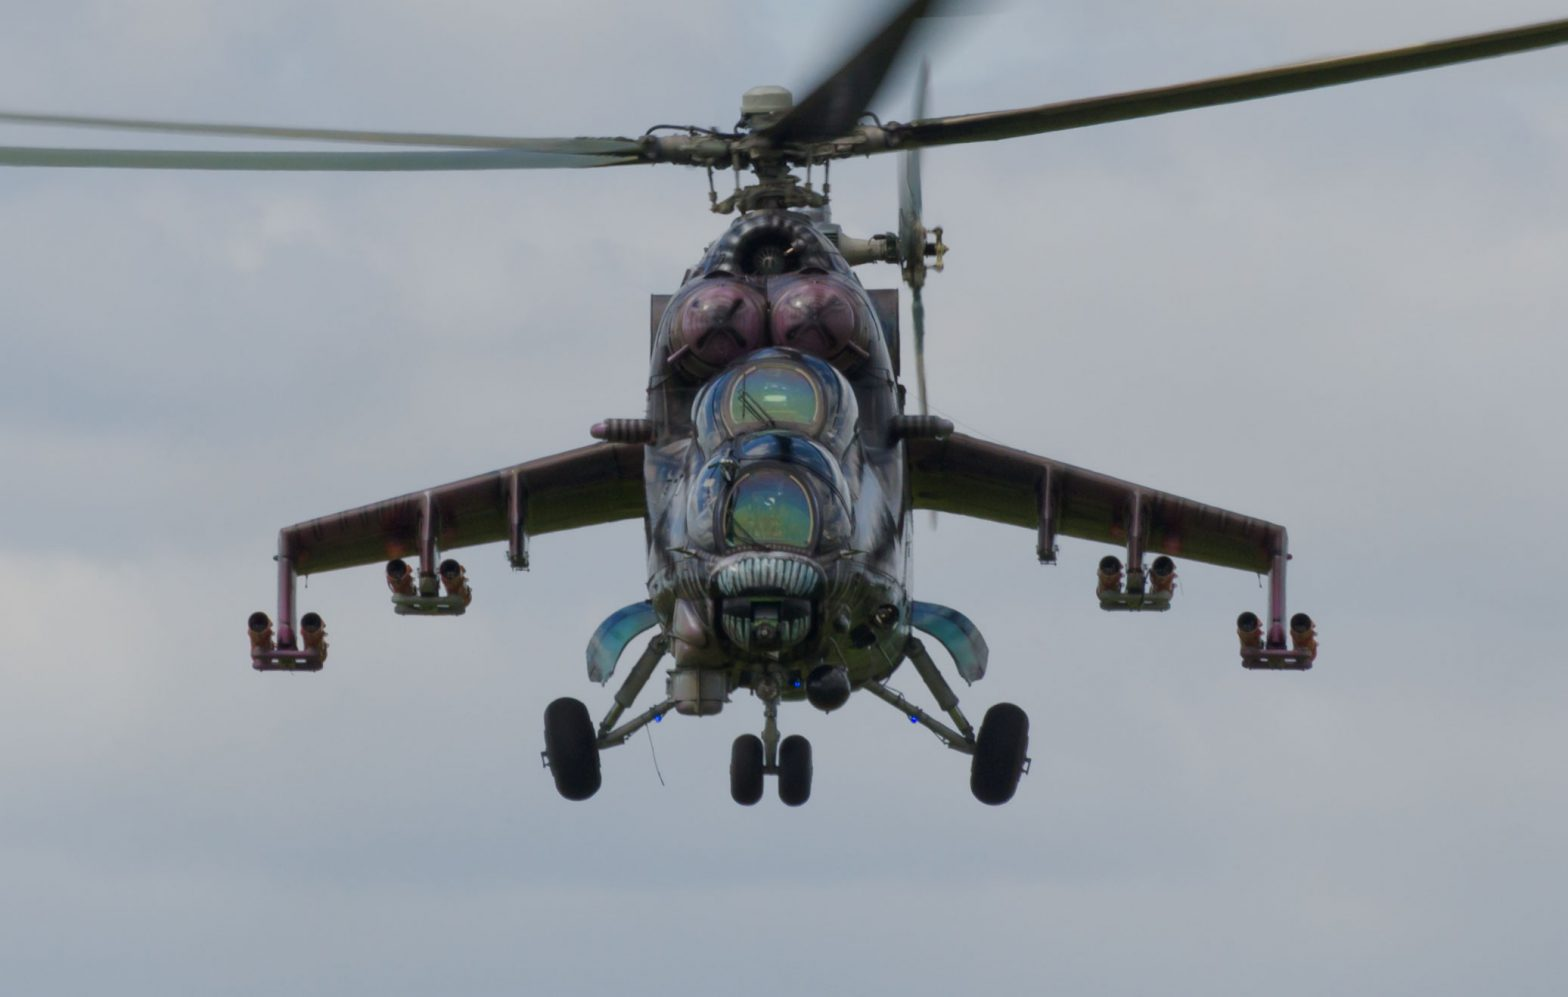 Biggin Hill Festival of Flight 2017 - Mil Mi-24